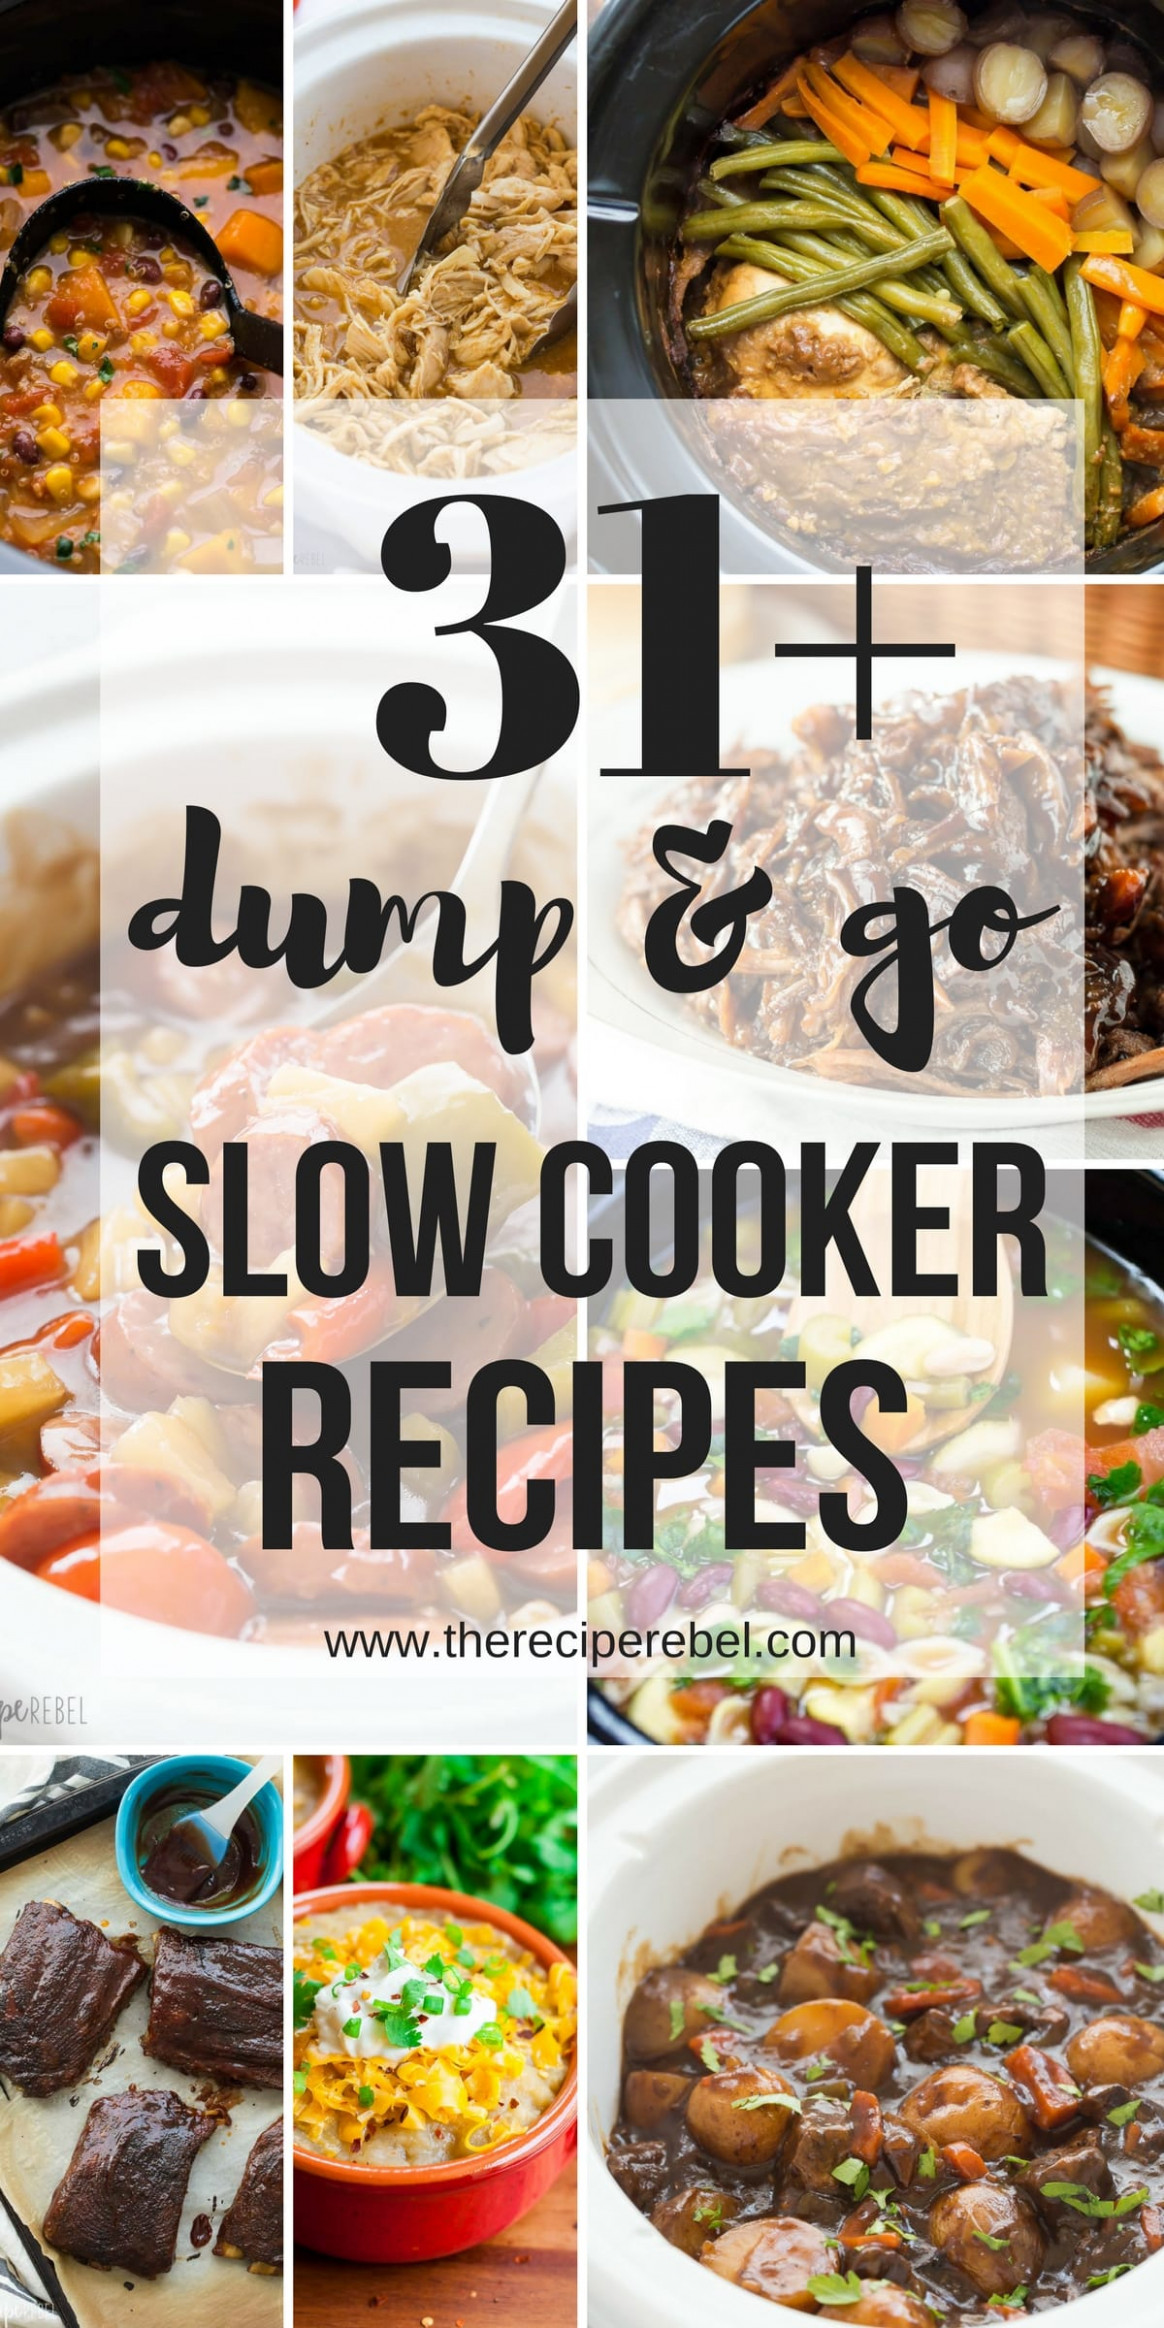 12 Dump And Go Slow Cooker Recipes (Crock Pot Dump Meals) - Recipes Dinner For One